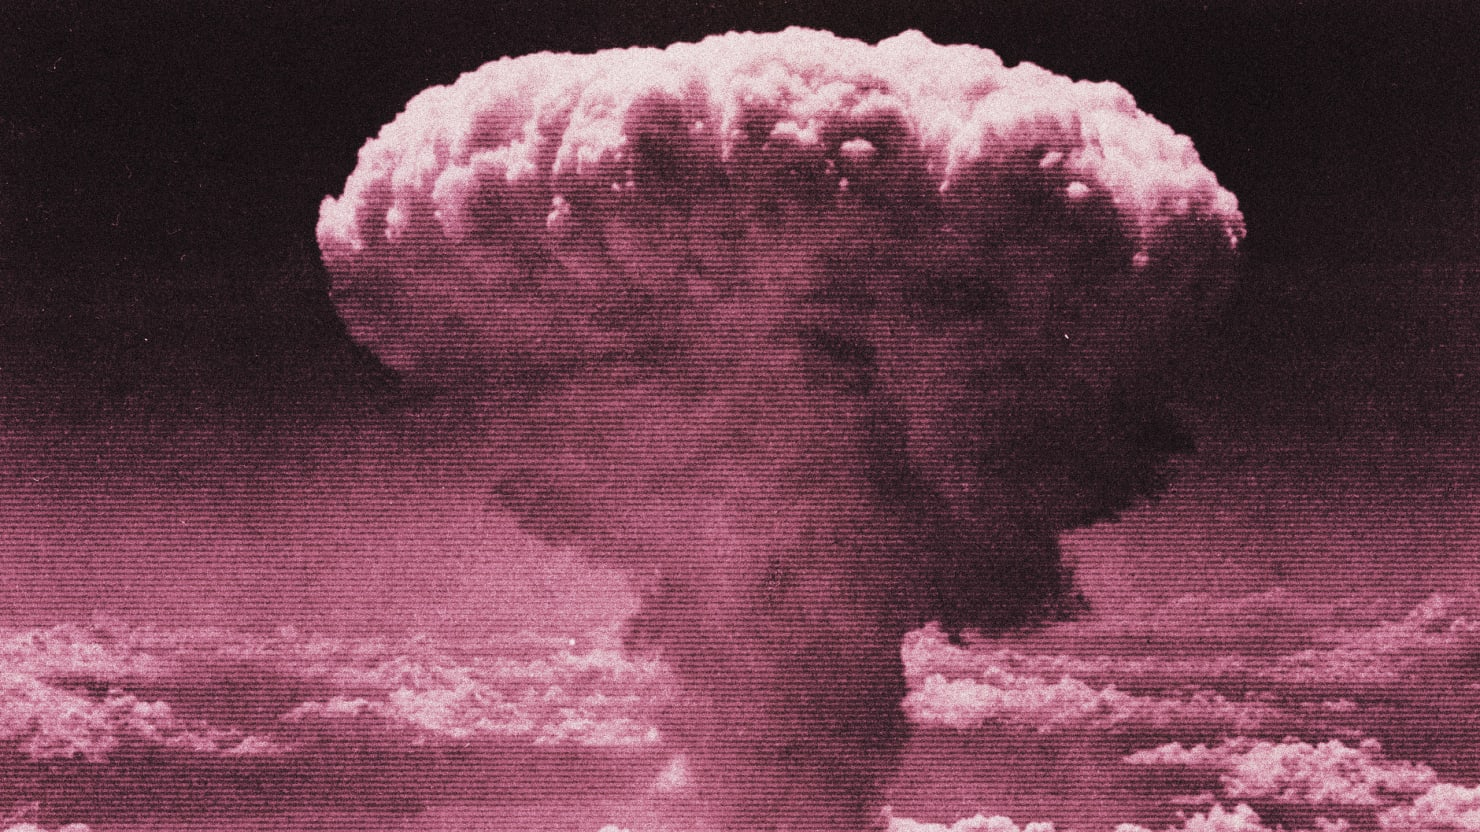 U.S. Planned to Drop 12 Atomic Bombs on Japan